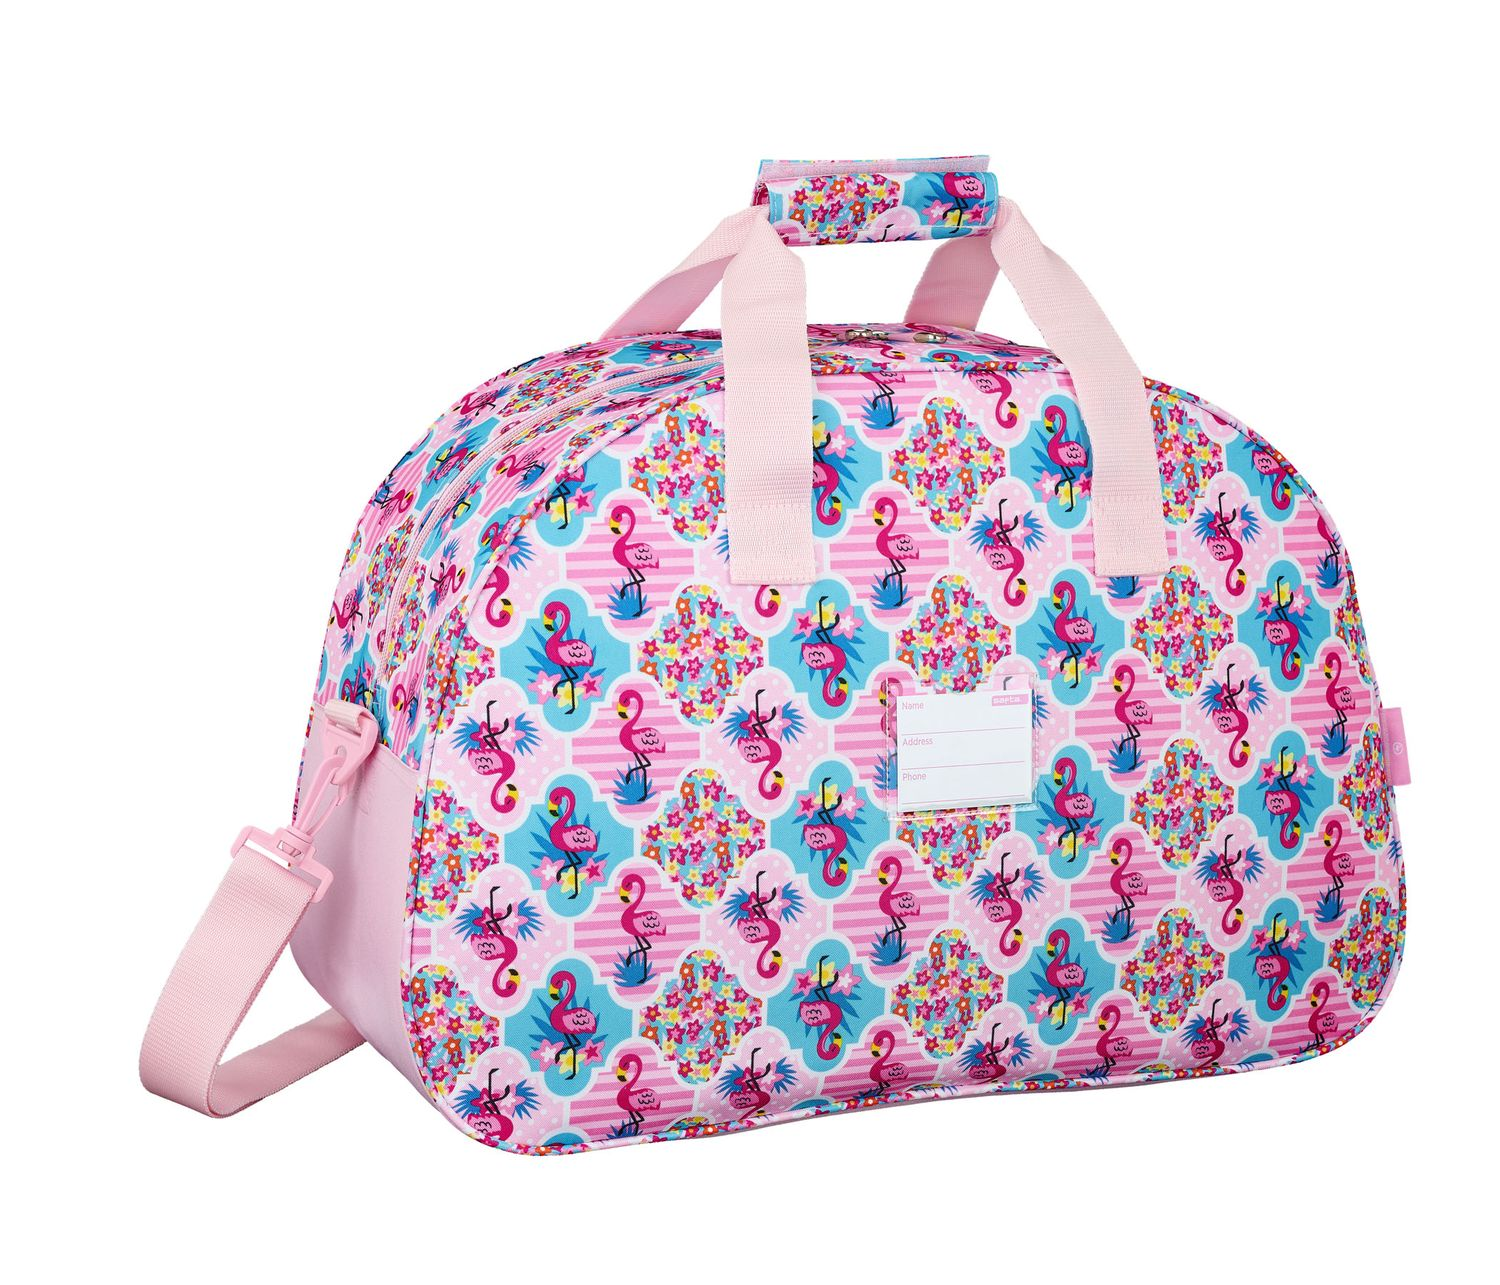 Travel Sports Bag 48 cm MOOS Flamingo Pink – image 2